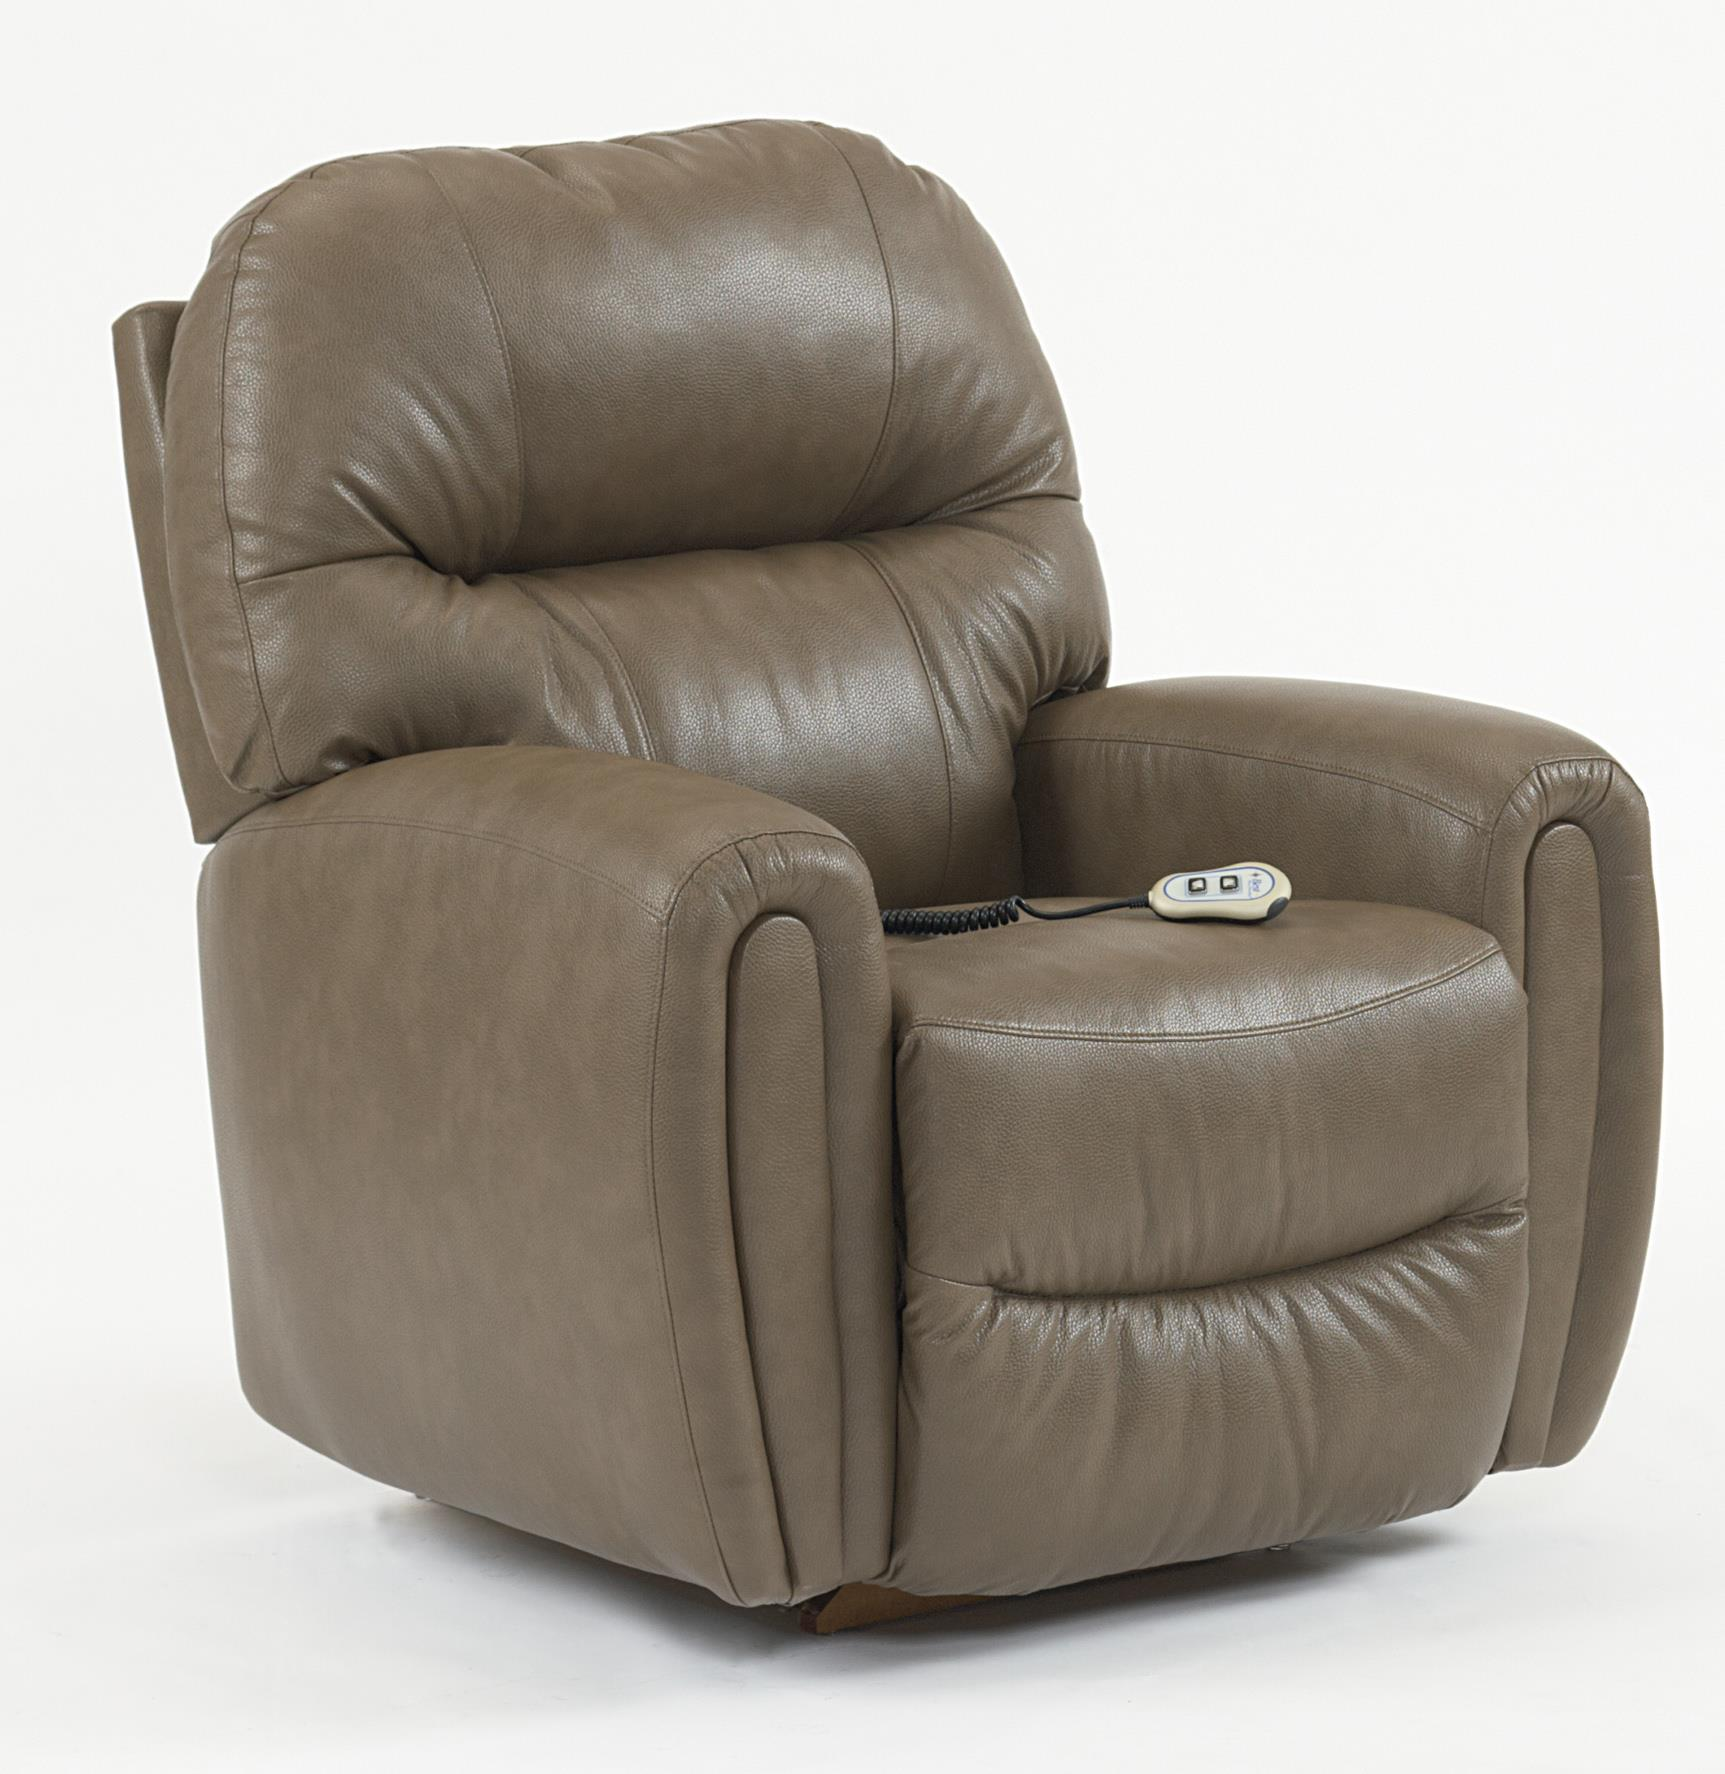 Best Home Furnishings Recliners - Medium Markson Power Space Saver Recliner - Item Number: 8NP64L